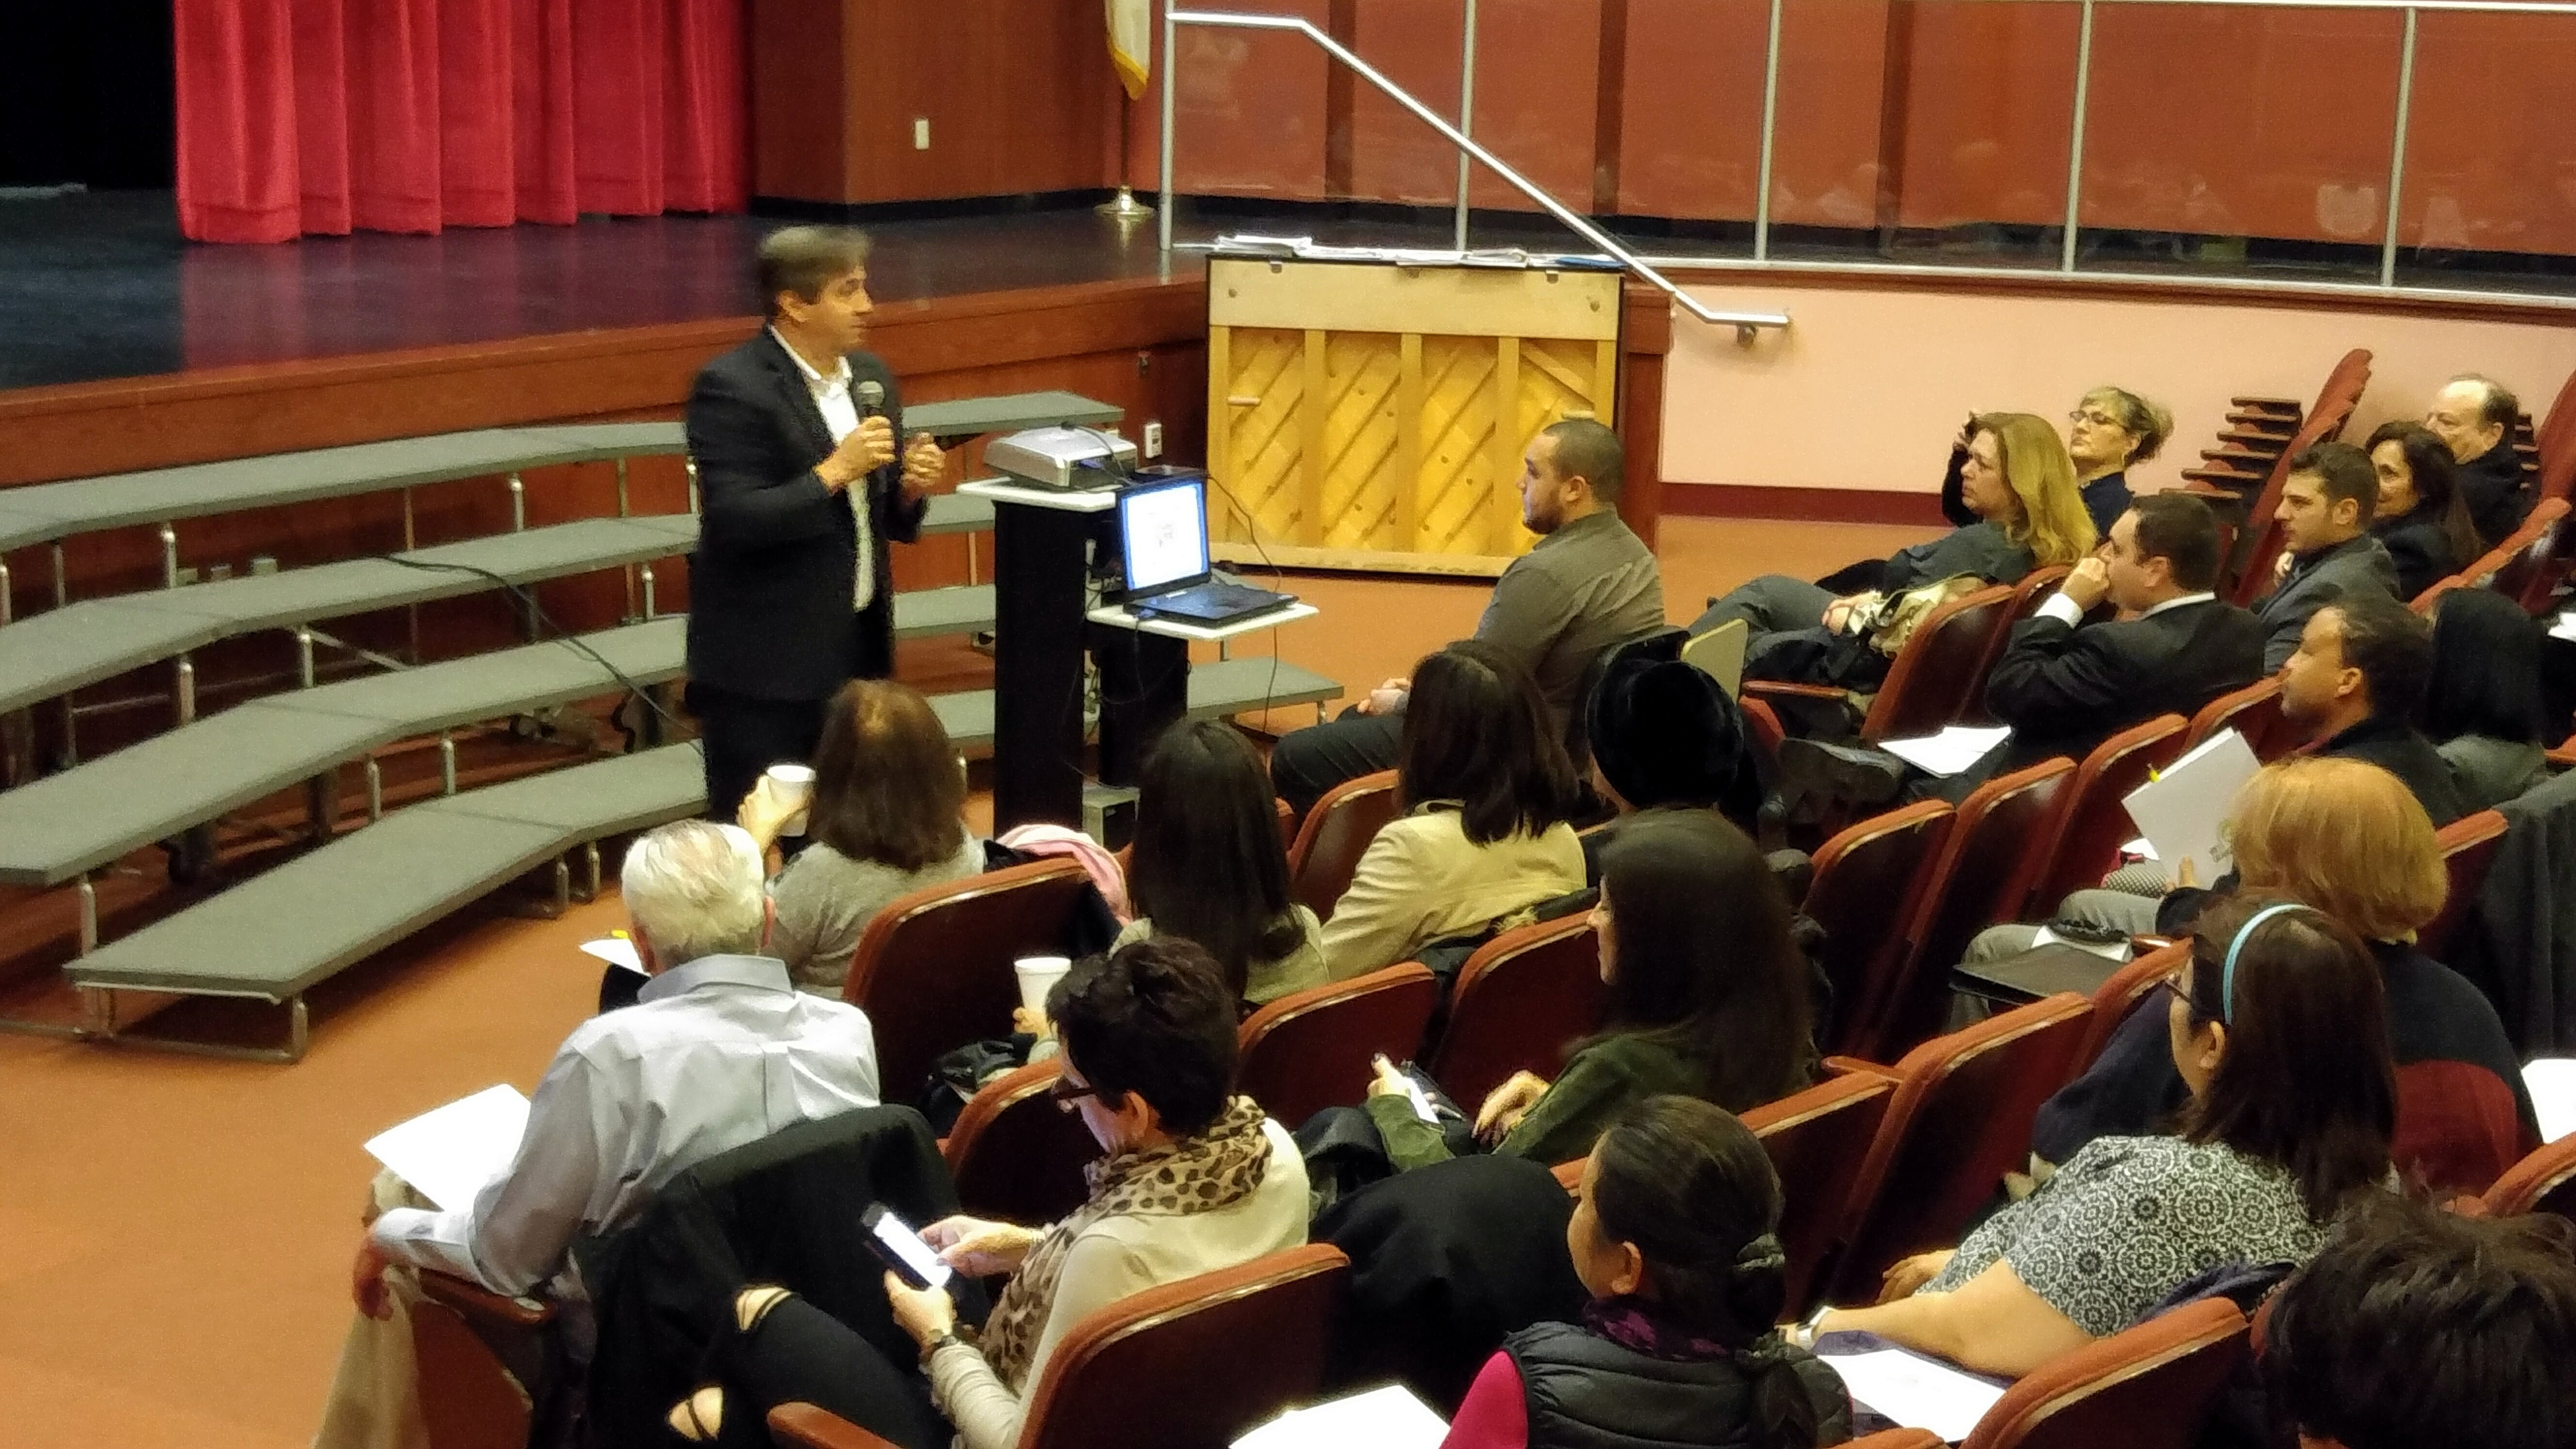 eddf78fad8c548dcefa5_Mayor_Parisi_Addresses_Realtor_Open_House.jpg